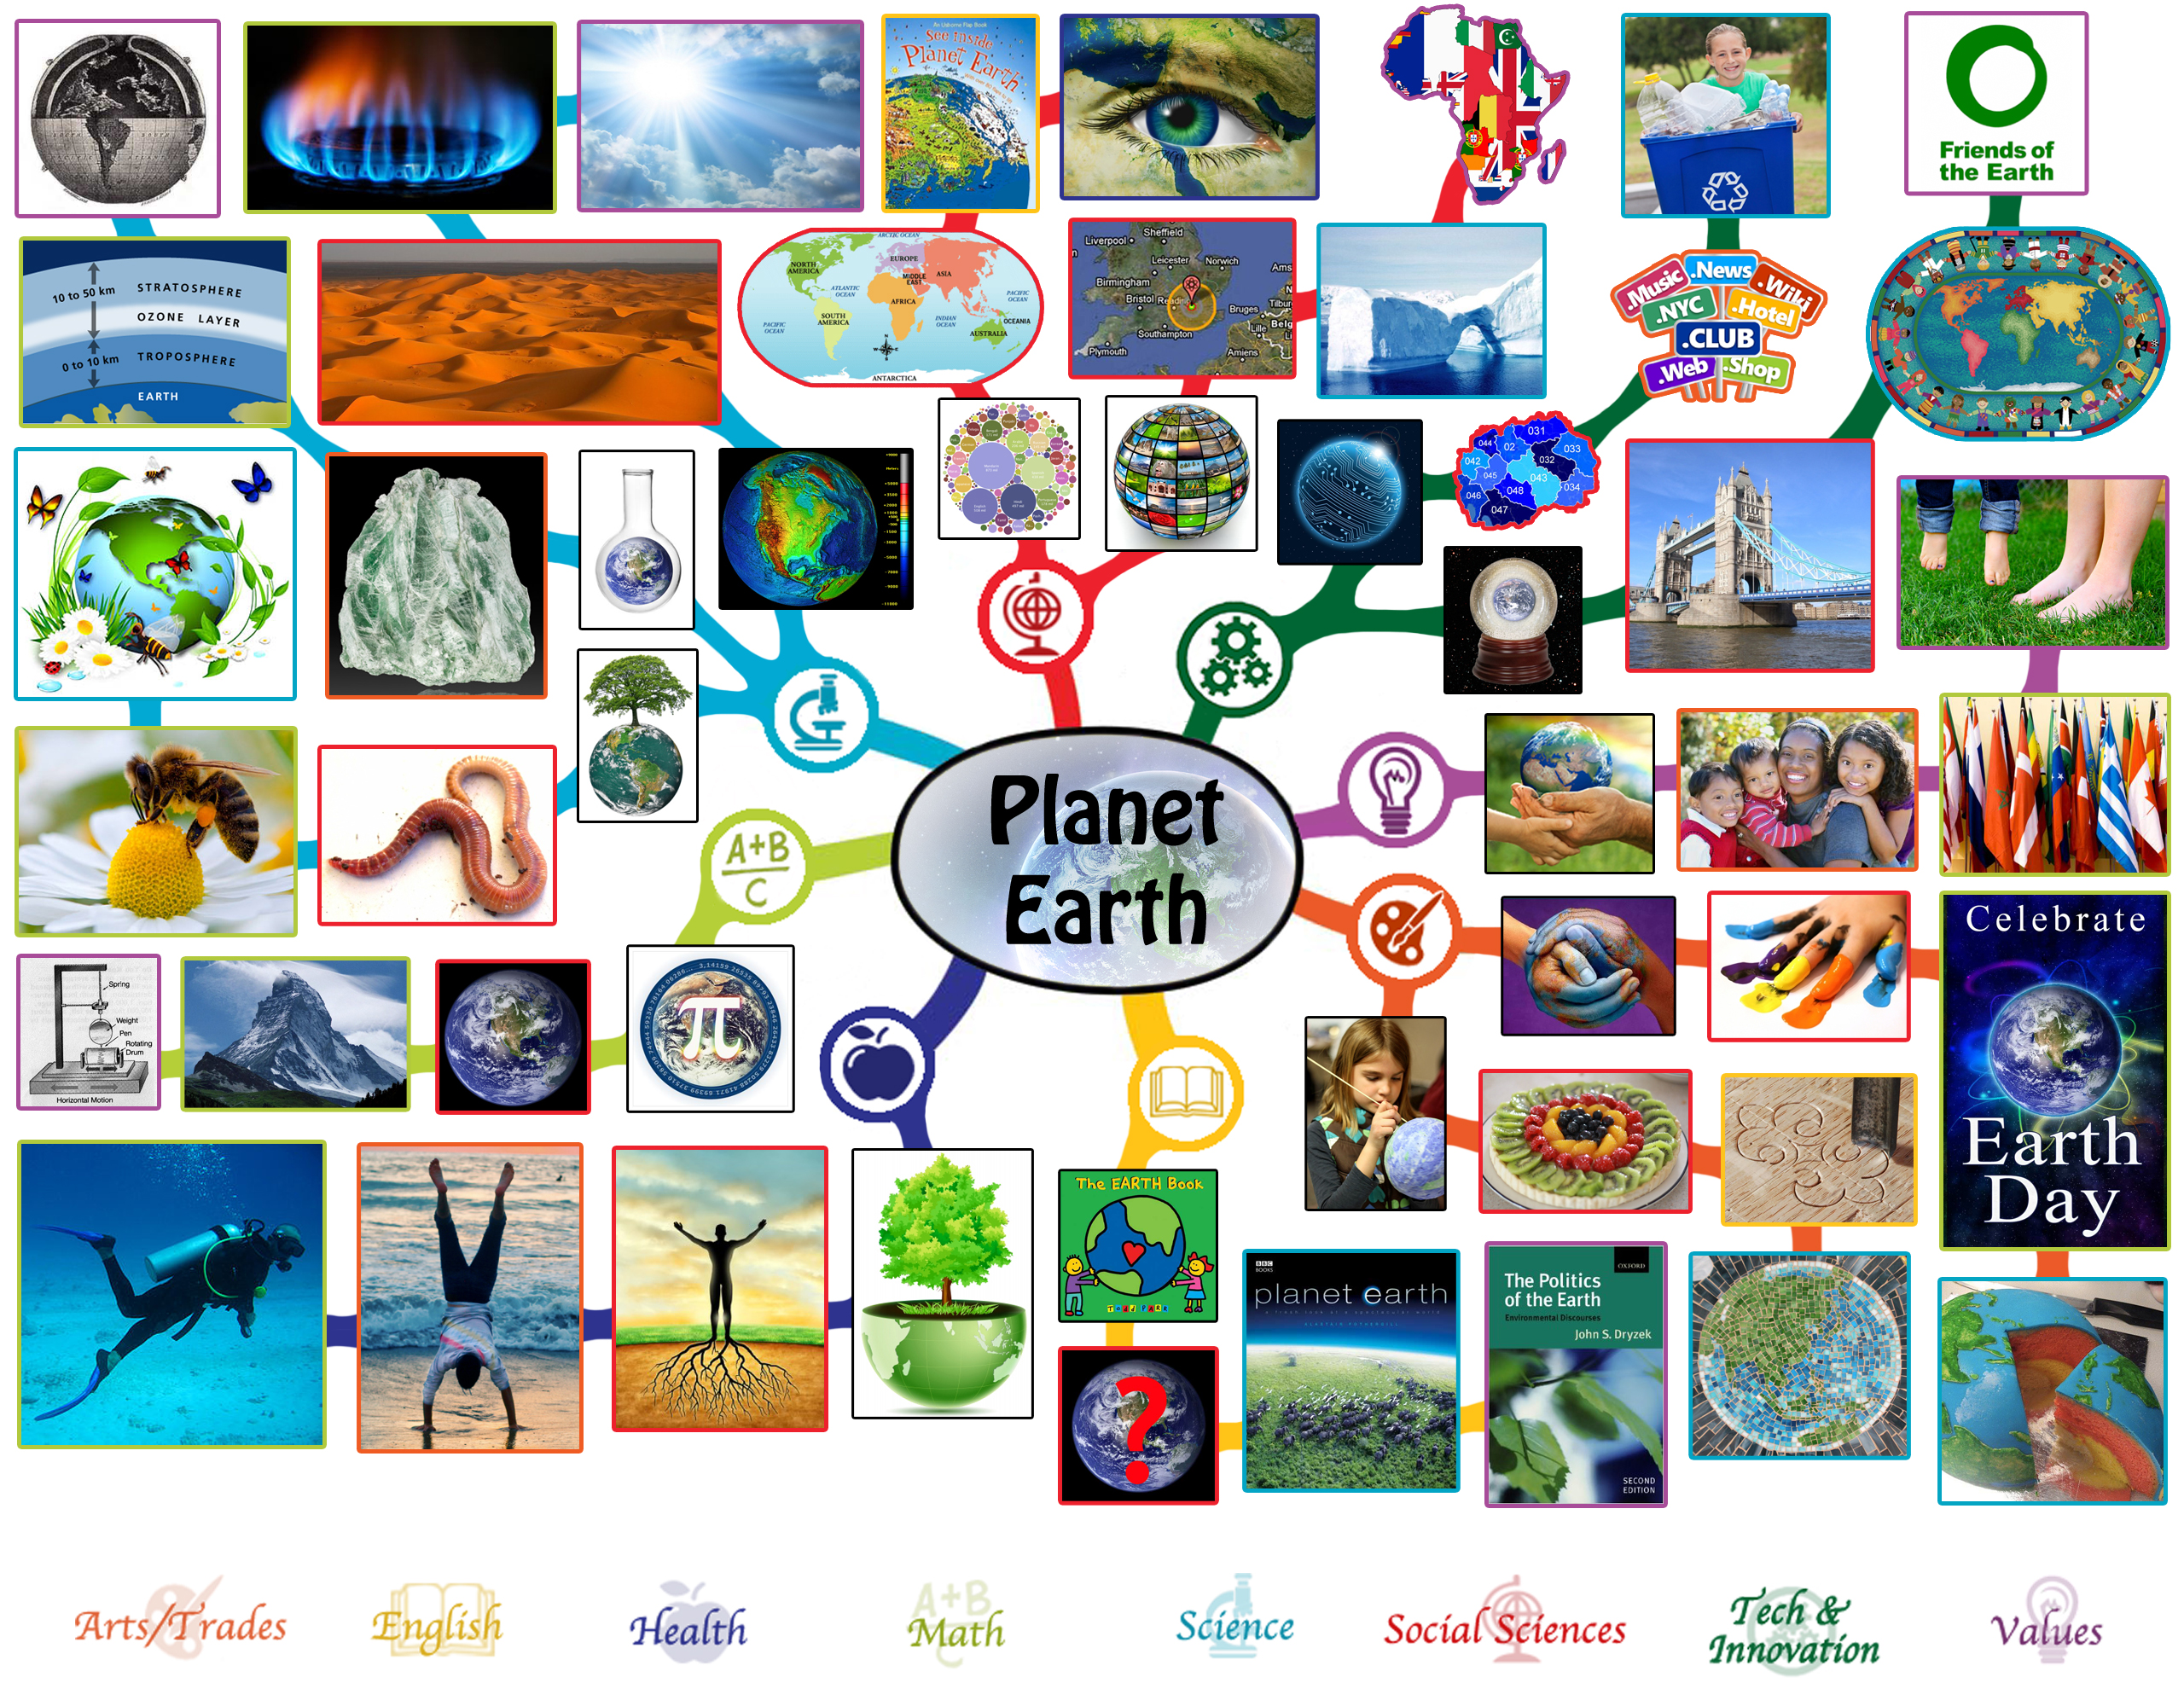 If the world were a village of 100 people lesson plan - Lesson Plan Mindmap For Planet Earth Click To Enlarge